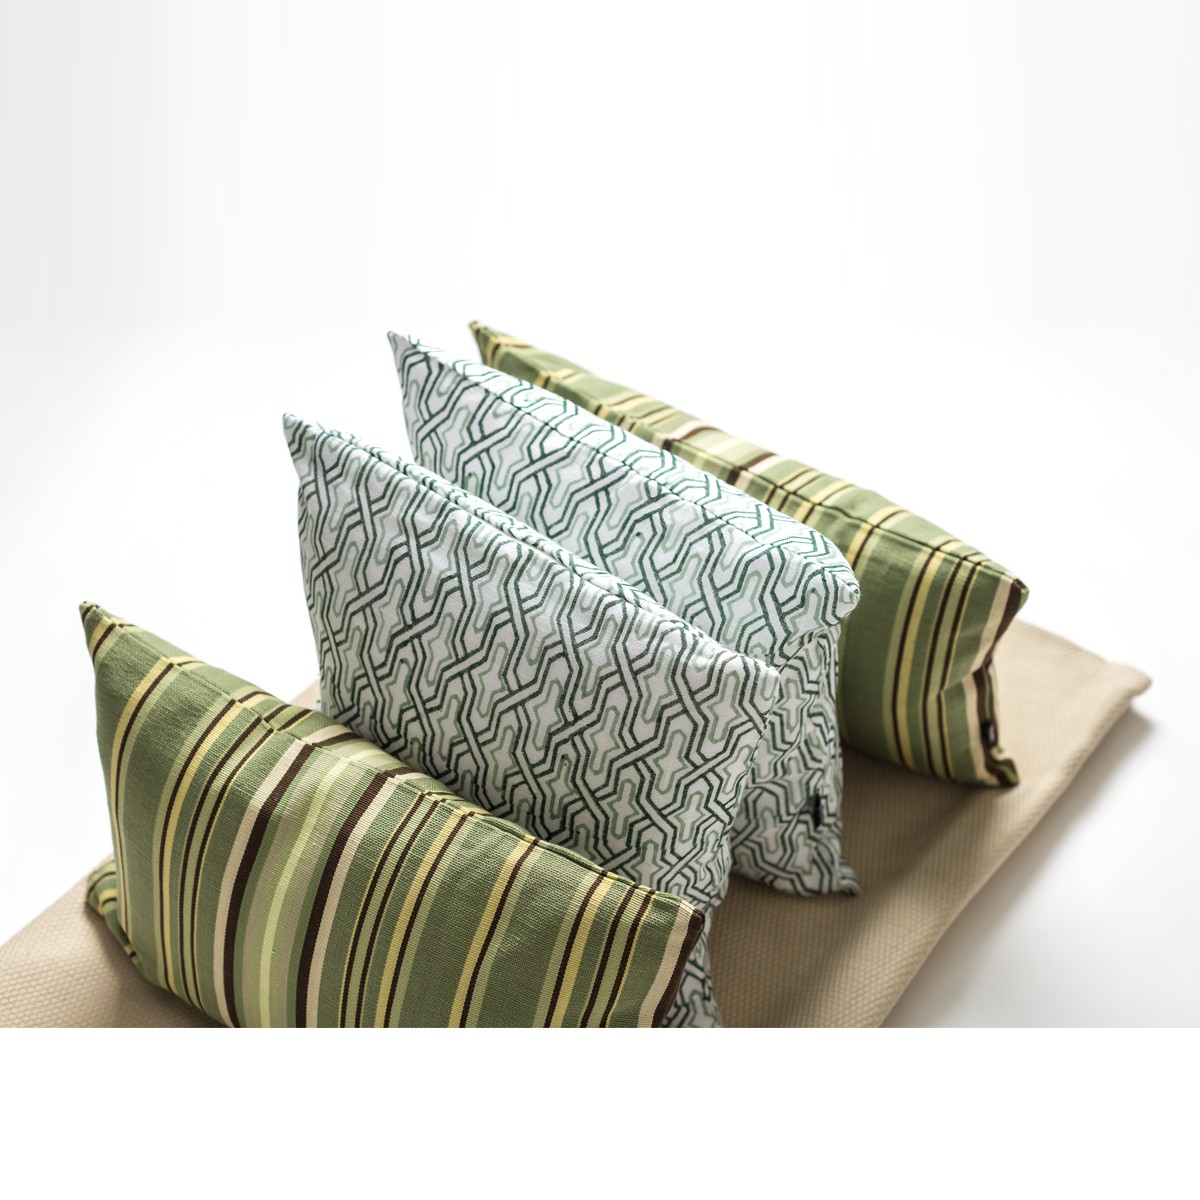 Fern - Green Cushion Cover Set for Bedroom